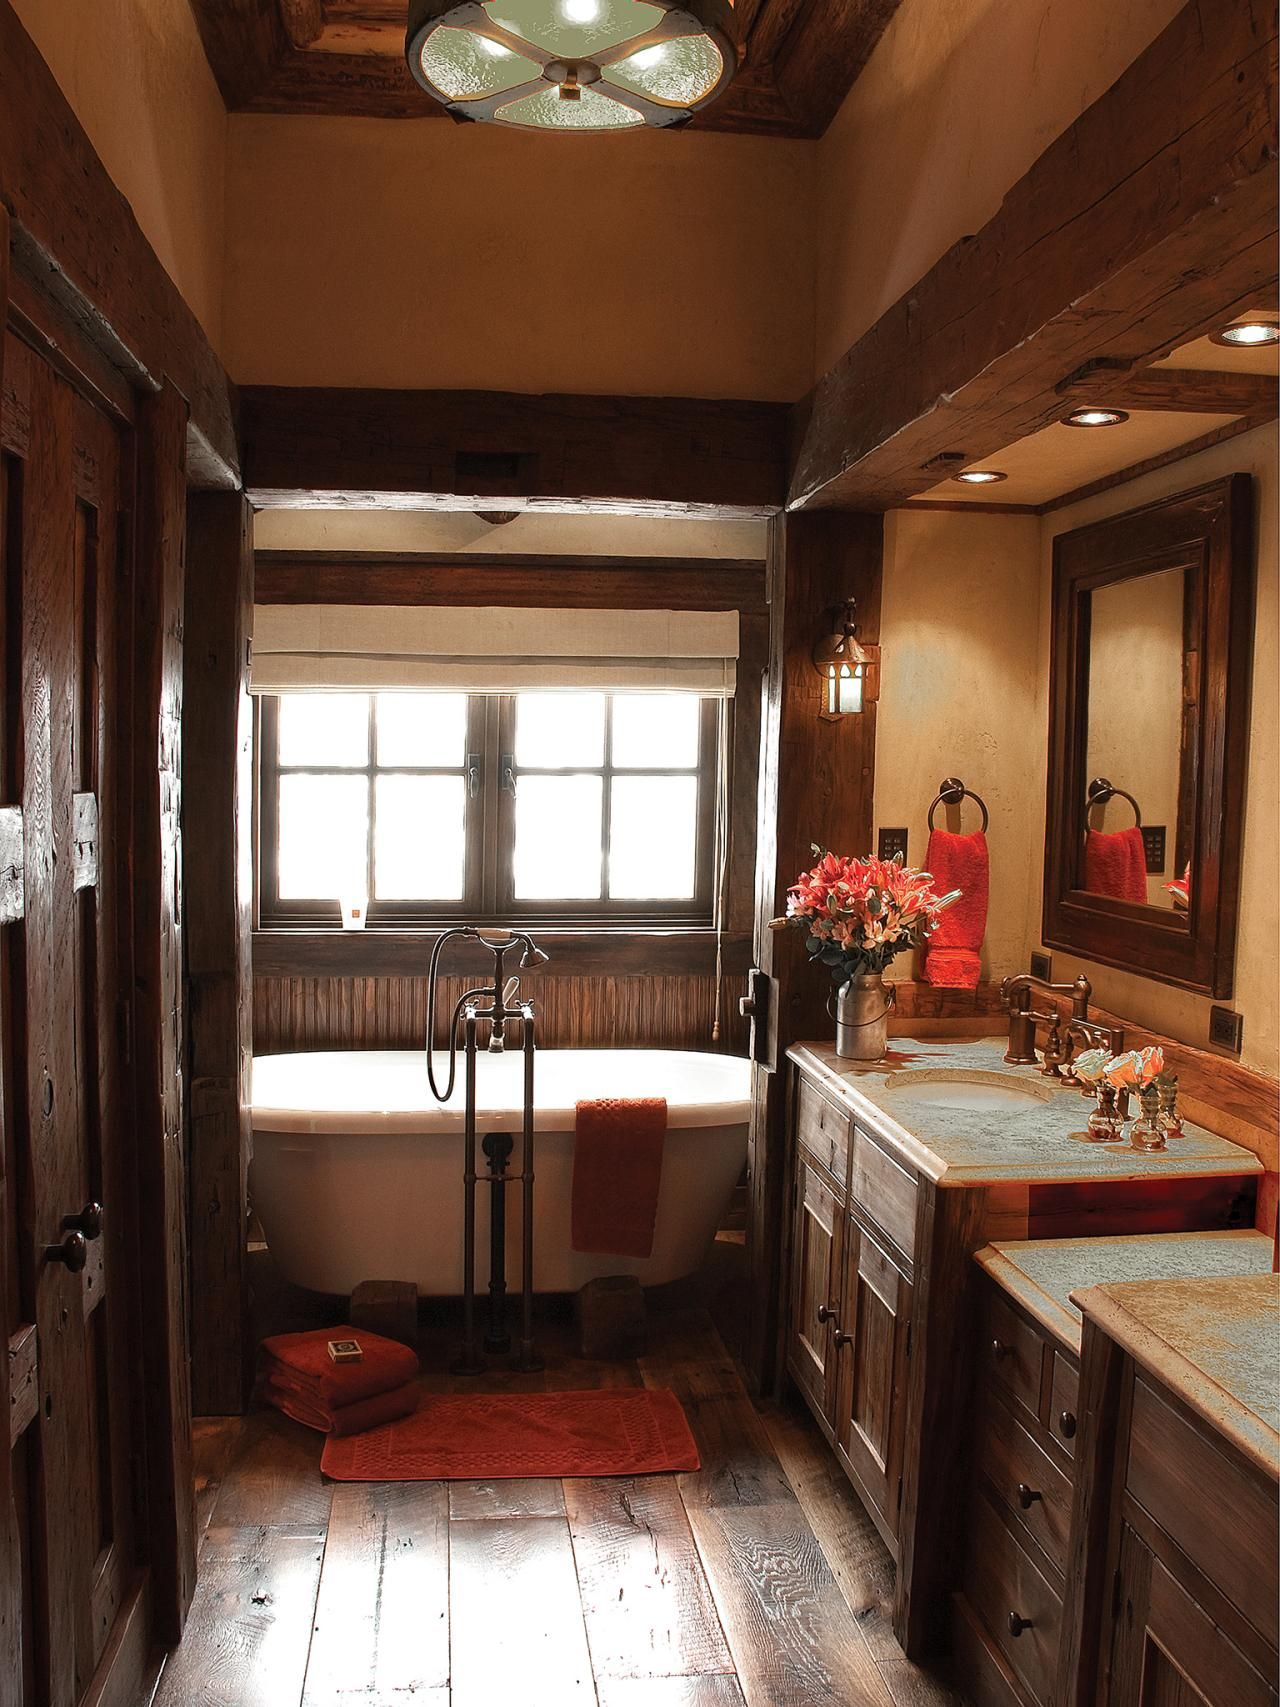 Badezimmer Glamour Add Glamour With Small Vintage Bathroom Ideas Ideas For The